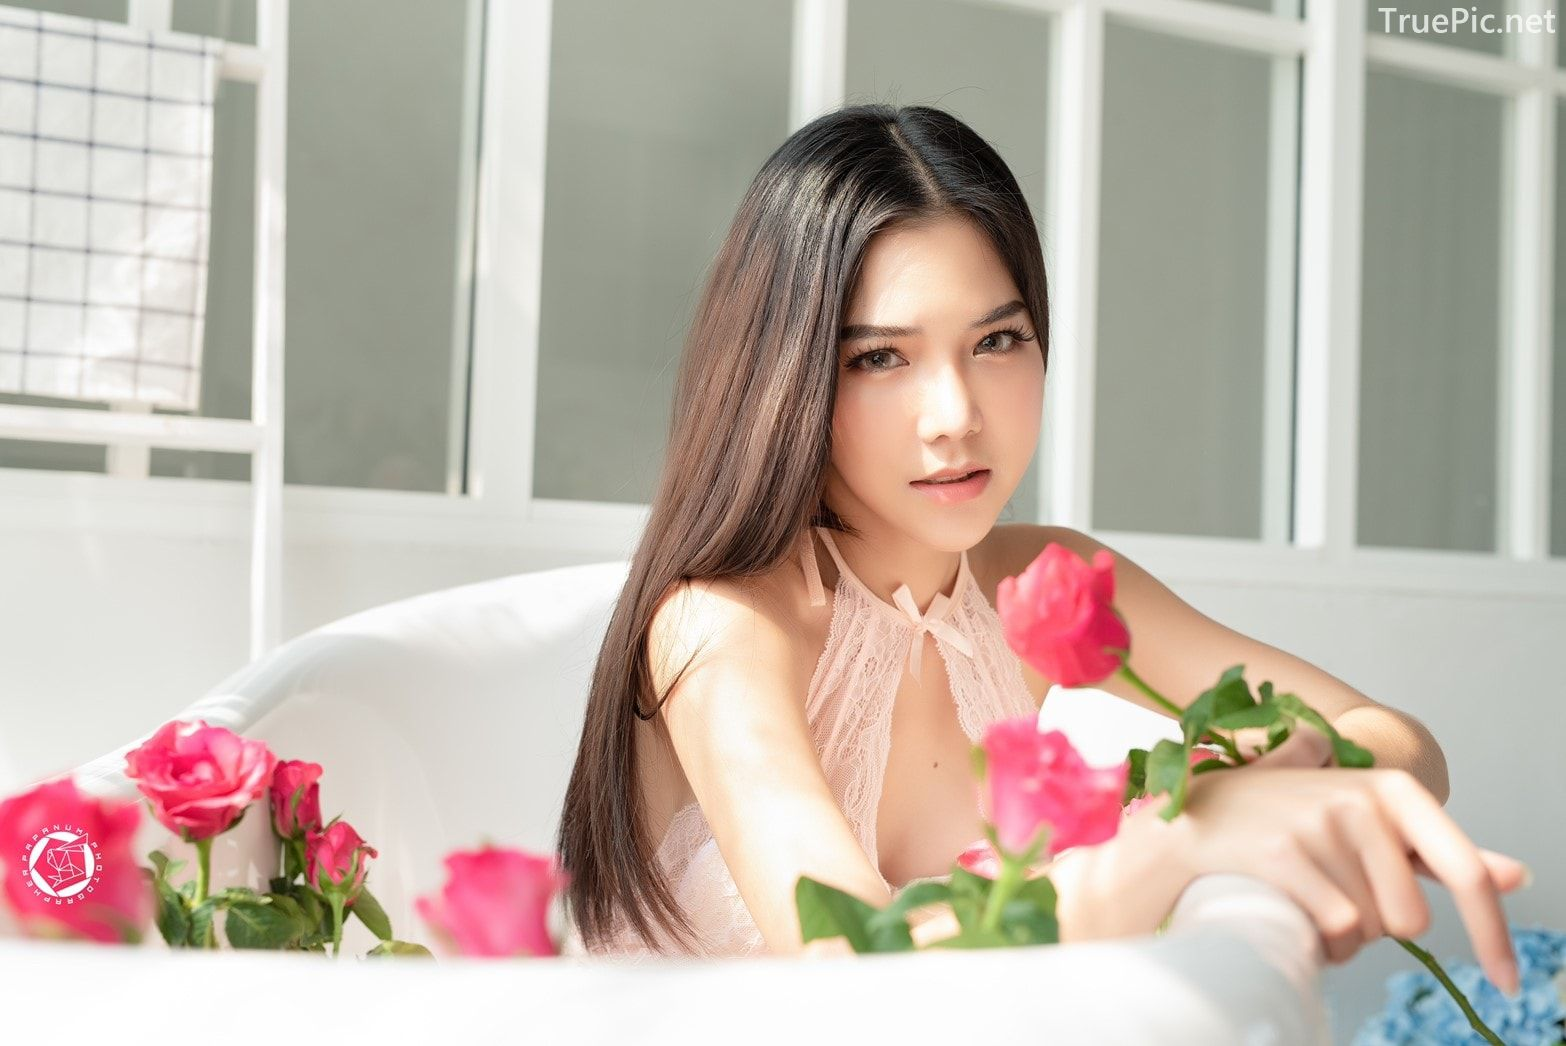 Thailand Model - Phitchamol Srijantanet - Roses for Lovers - TruePic.net - Picture 4